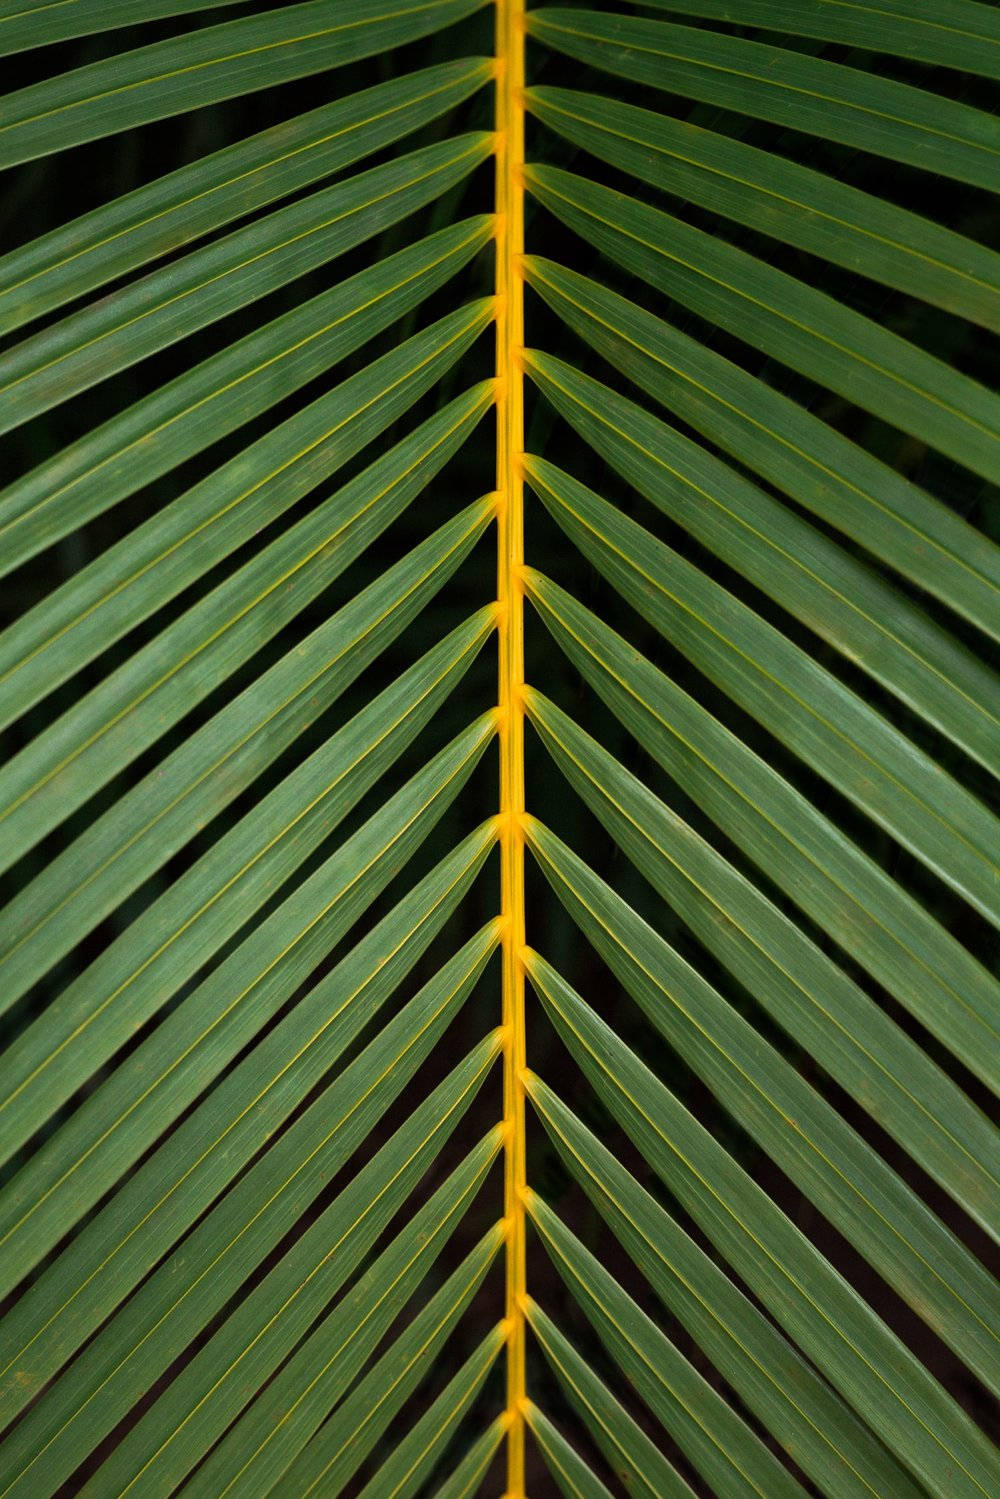 cameron-zegers-photography-hawaii-palm.jpg